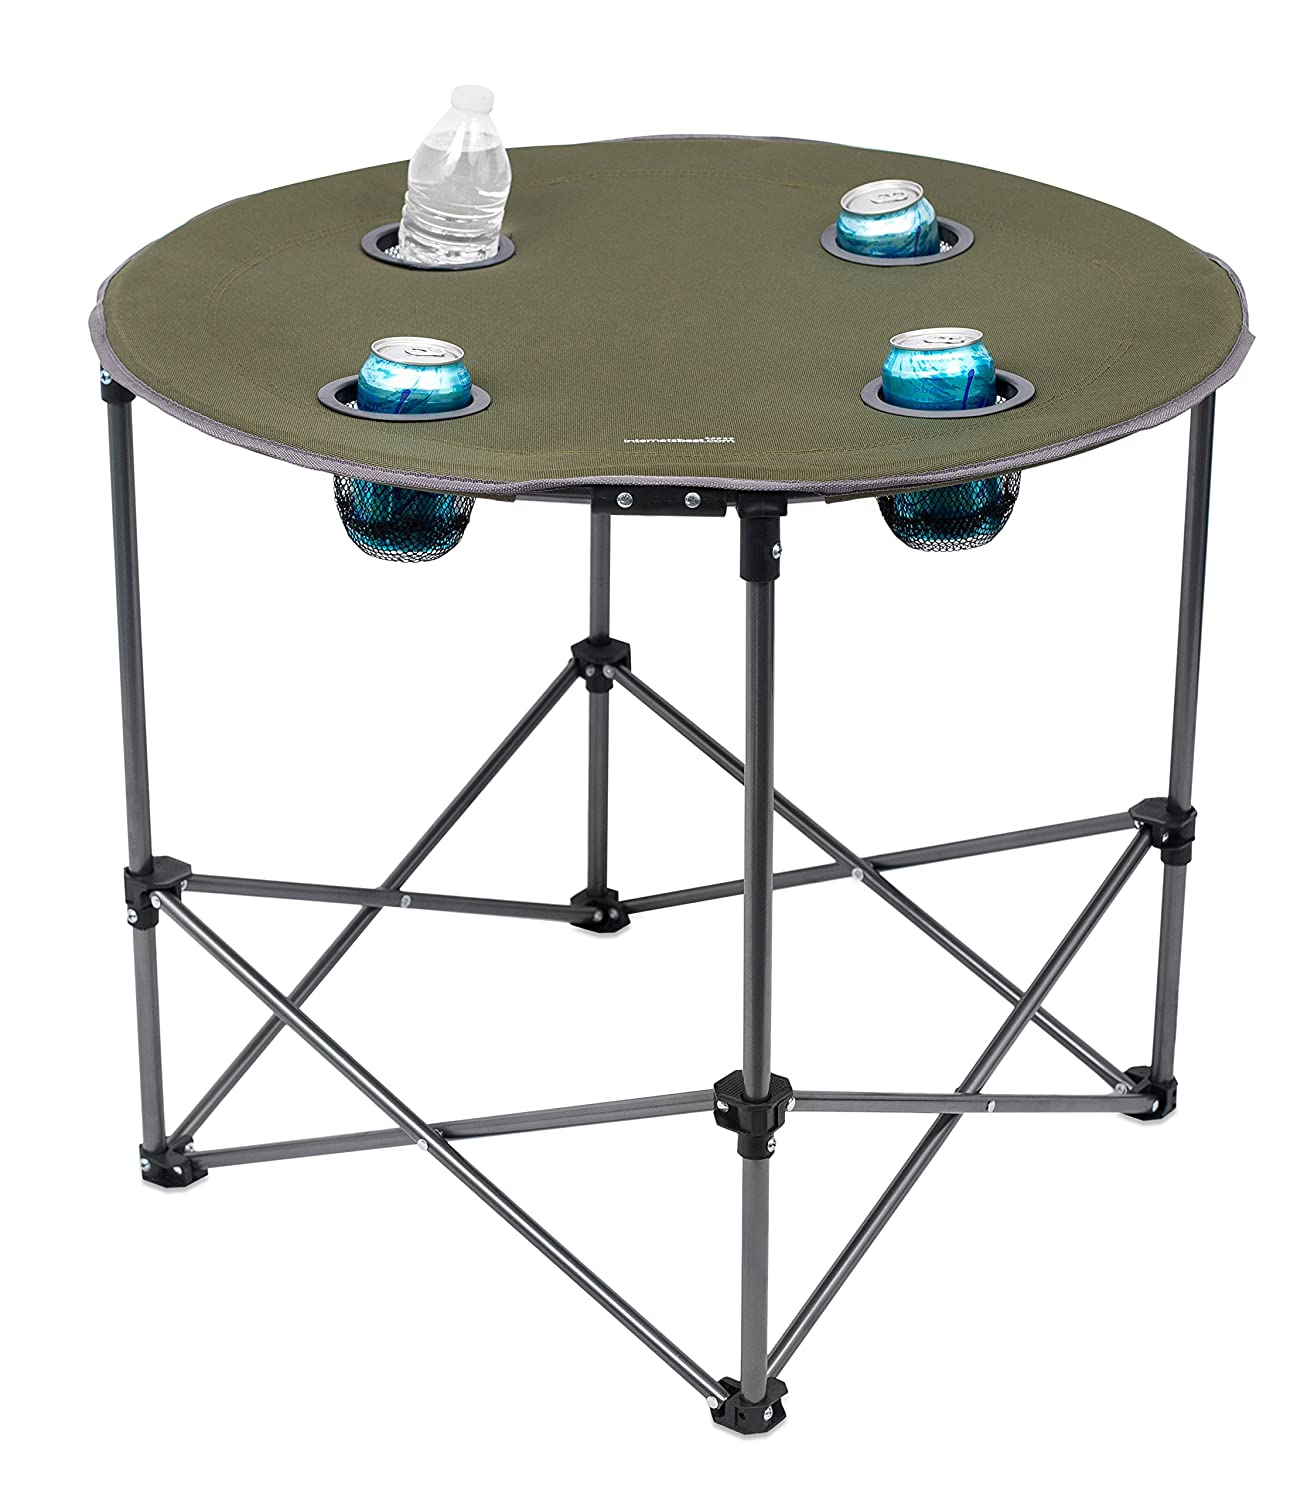 Beau Amazon.com : Internetu0027s Best Camping Folding Table   4 Cup Holders   Green    Outdoor   Quad   Carrying Bag   Lightweight : Sports U0026 Outdoors